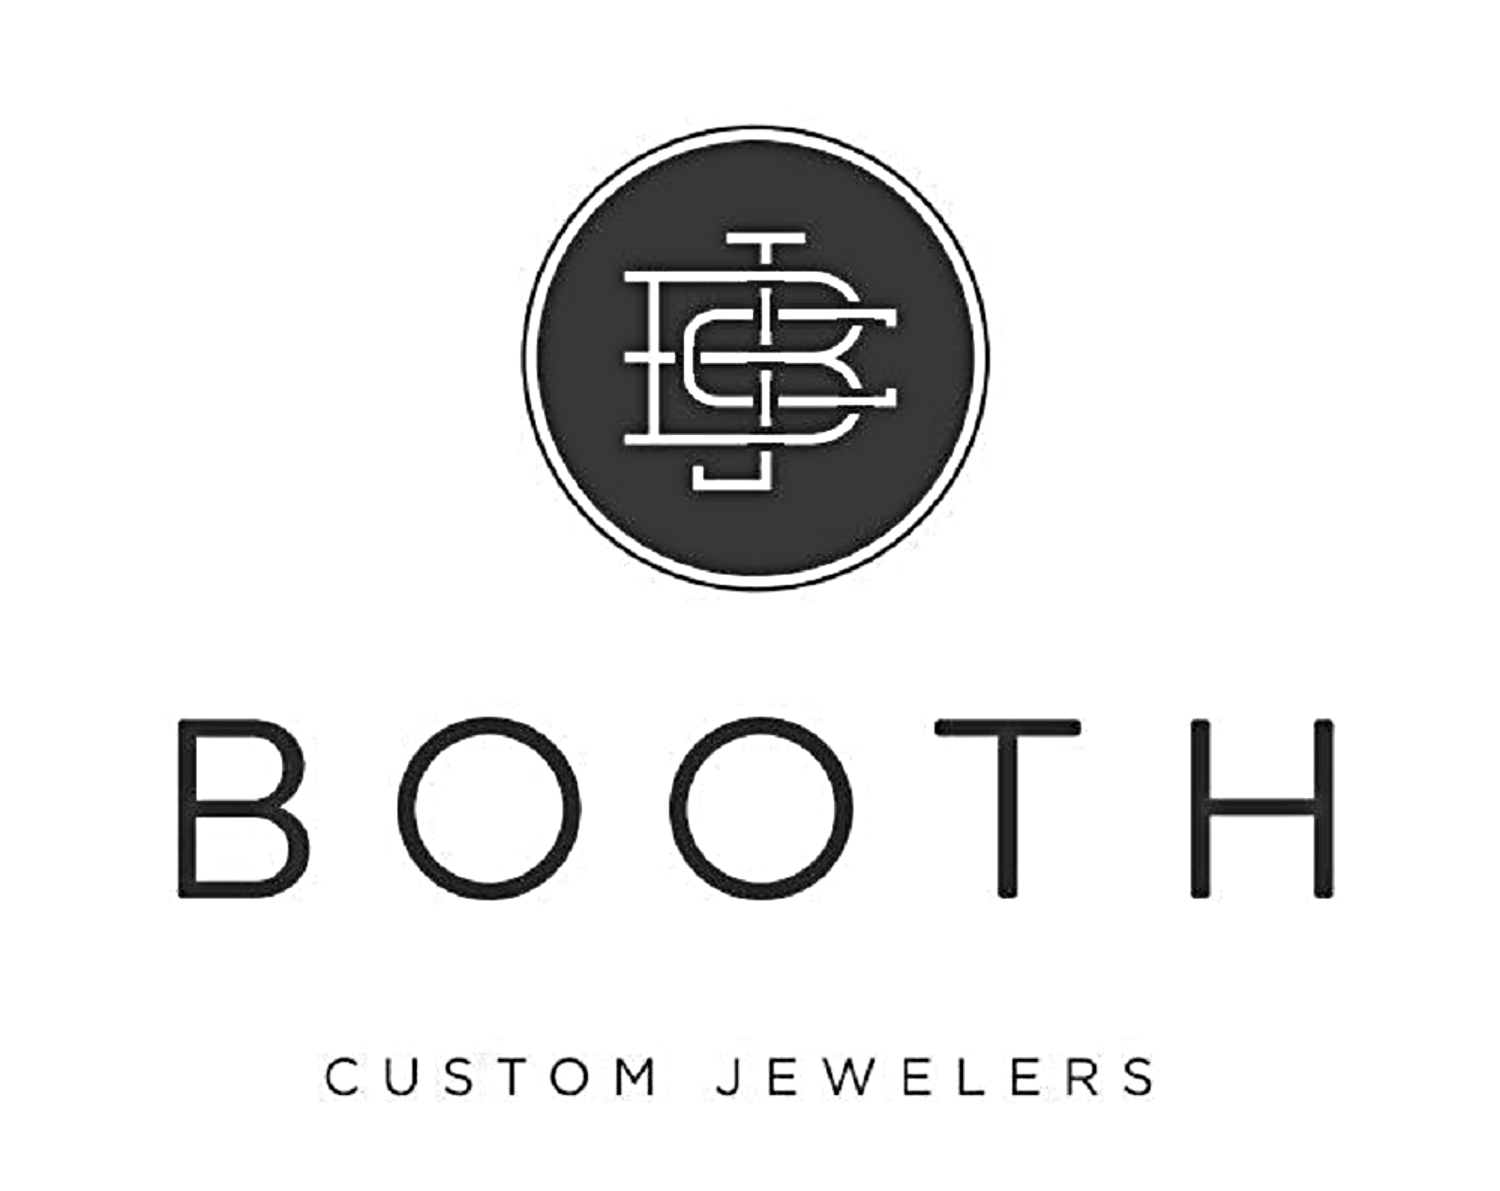 Booth Custom Jewelers